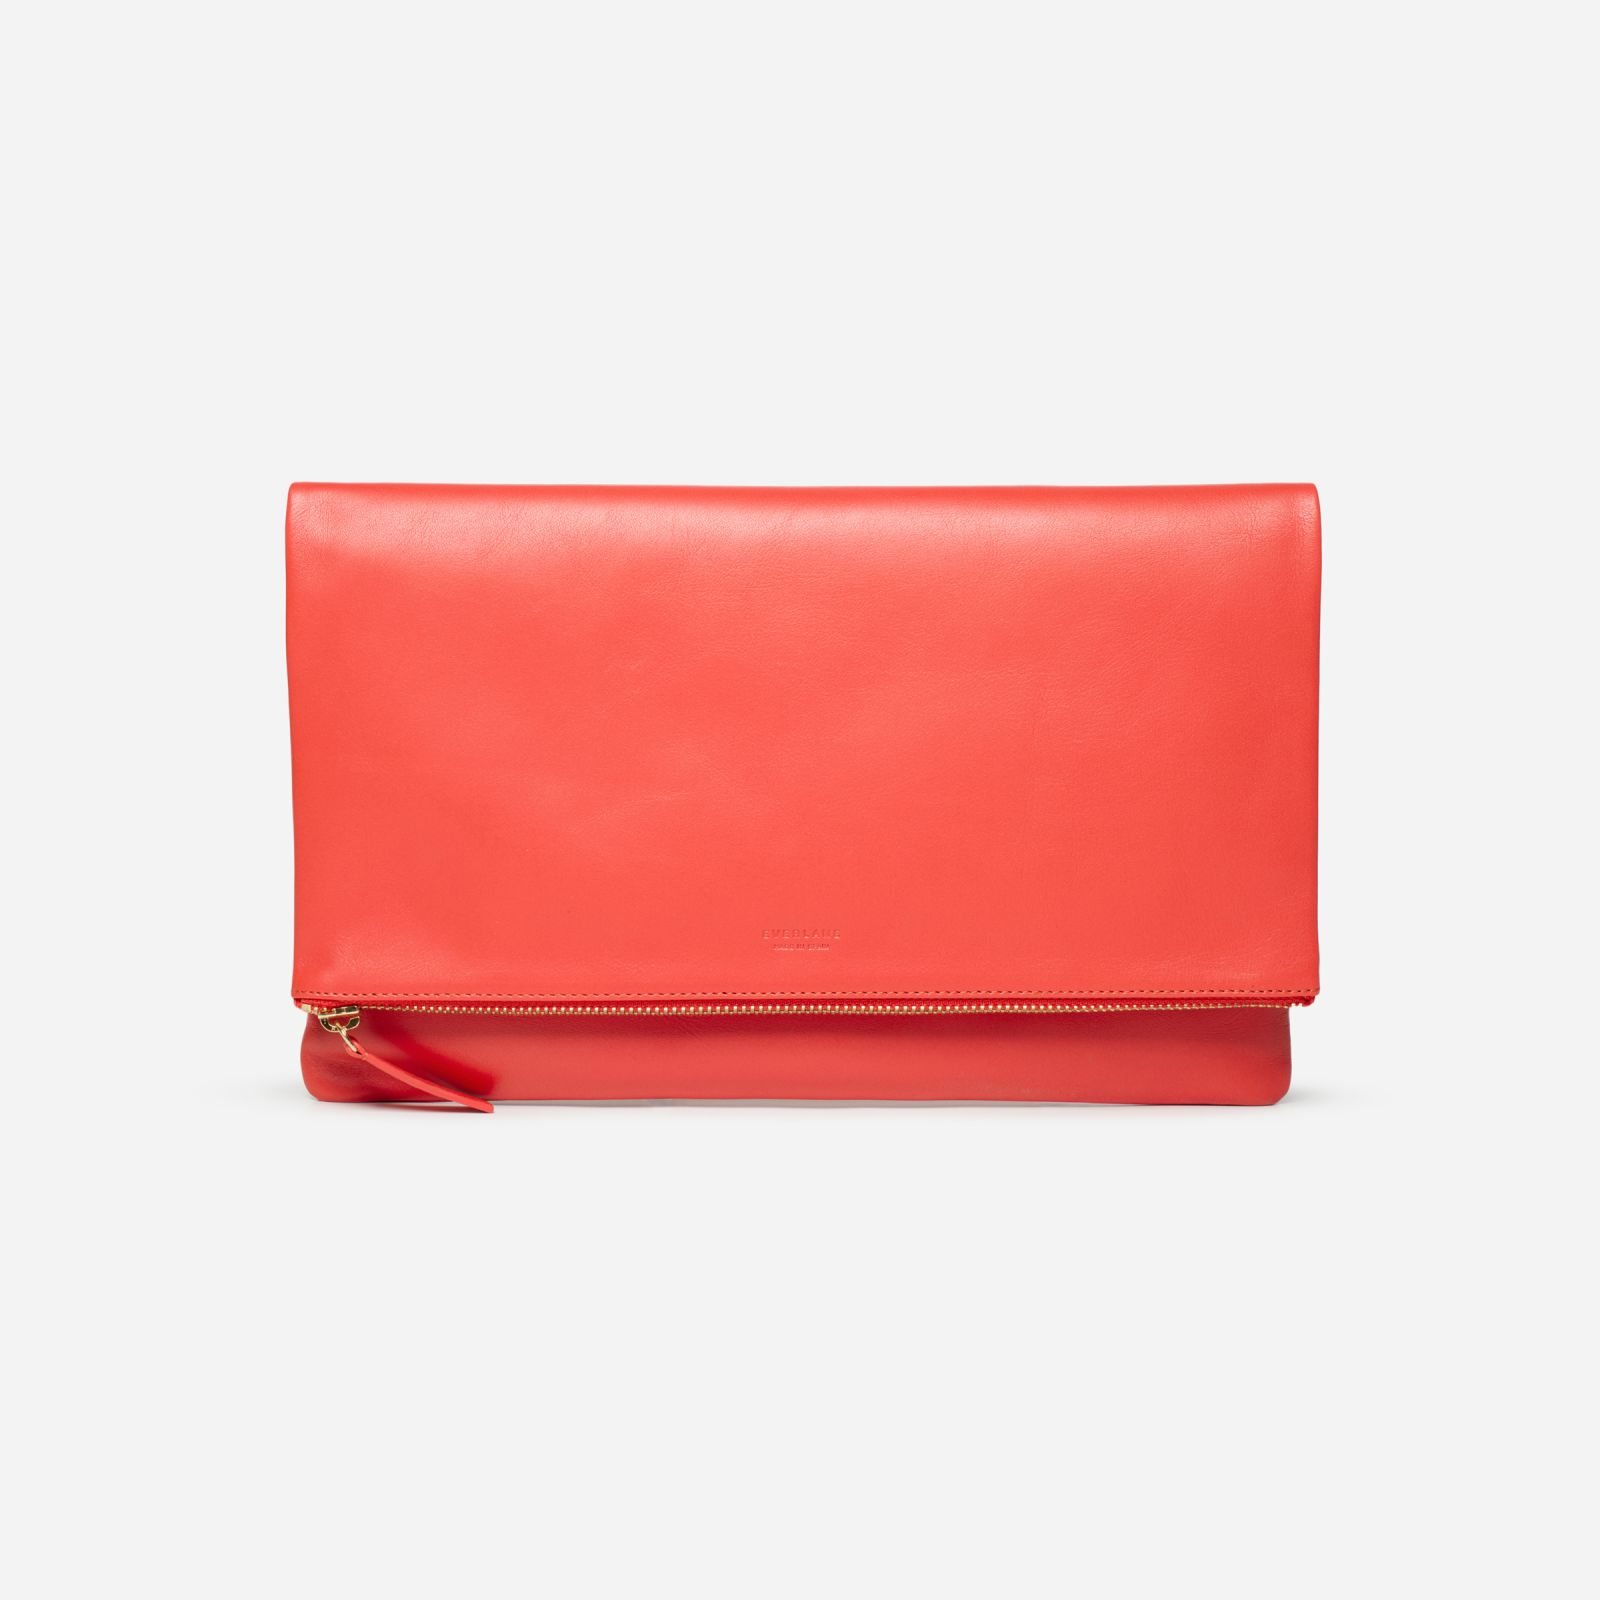 women's foldover pouch by everlane in bright red